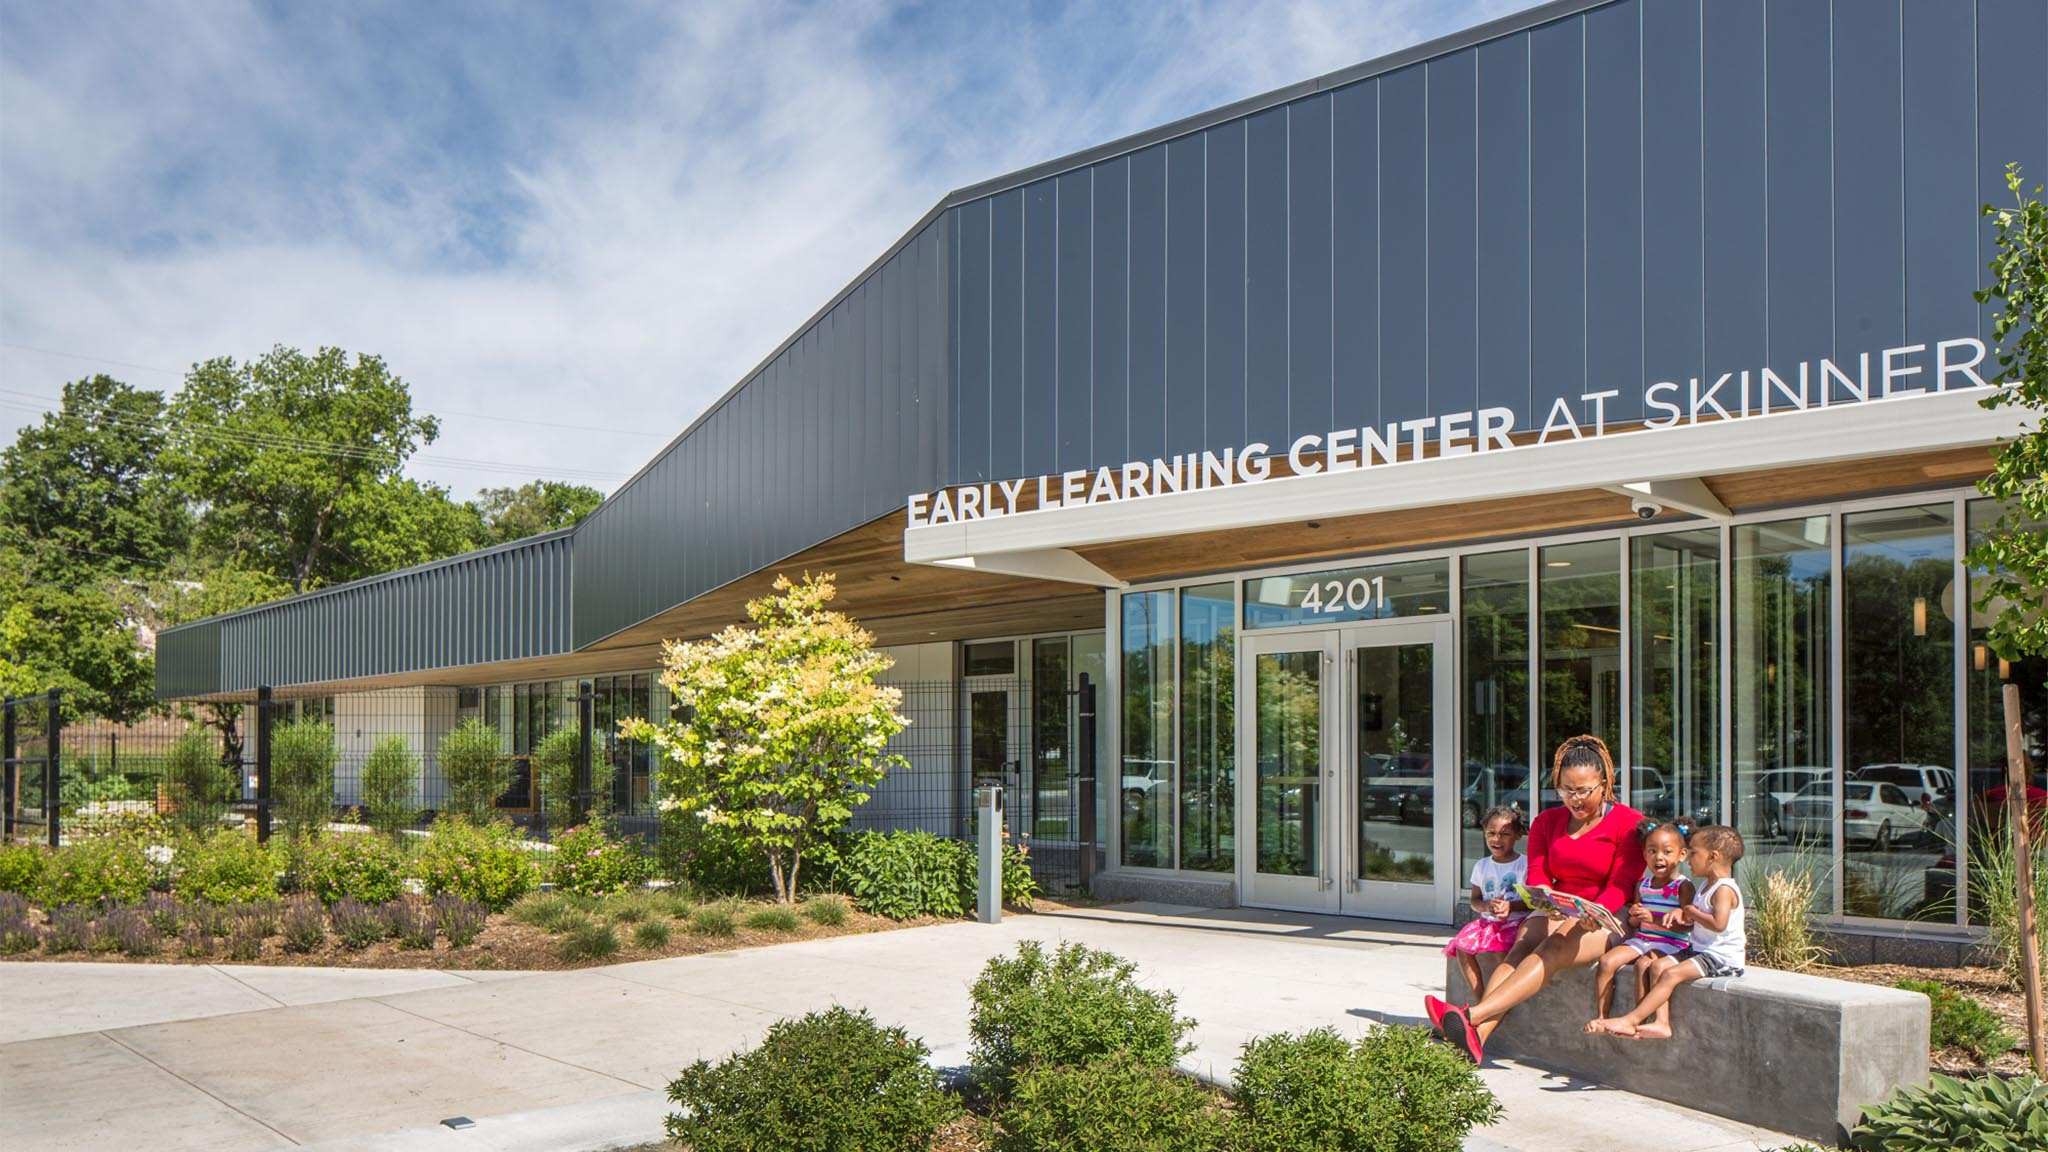 Woman with chicldren sitting outside of Skinner Early Learning Center